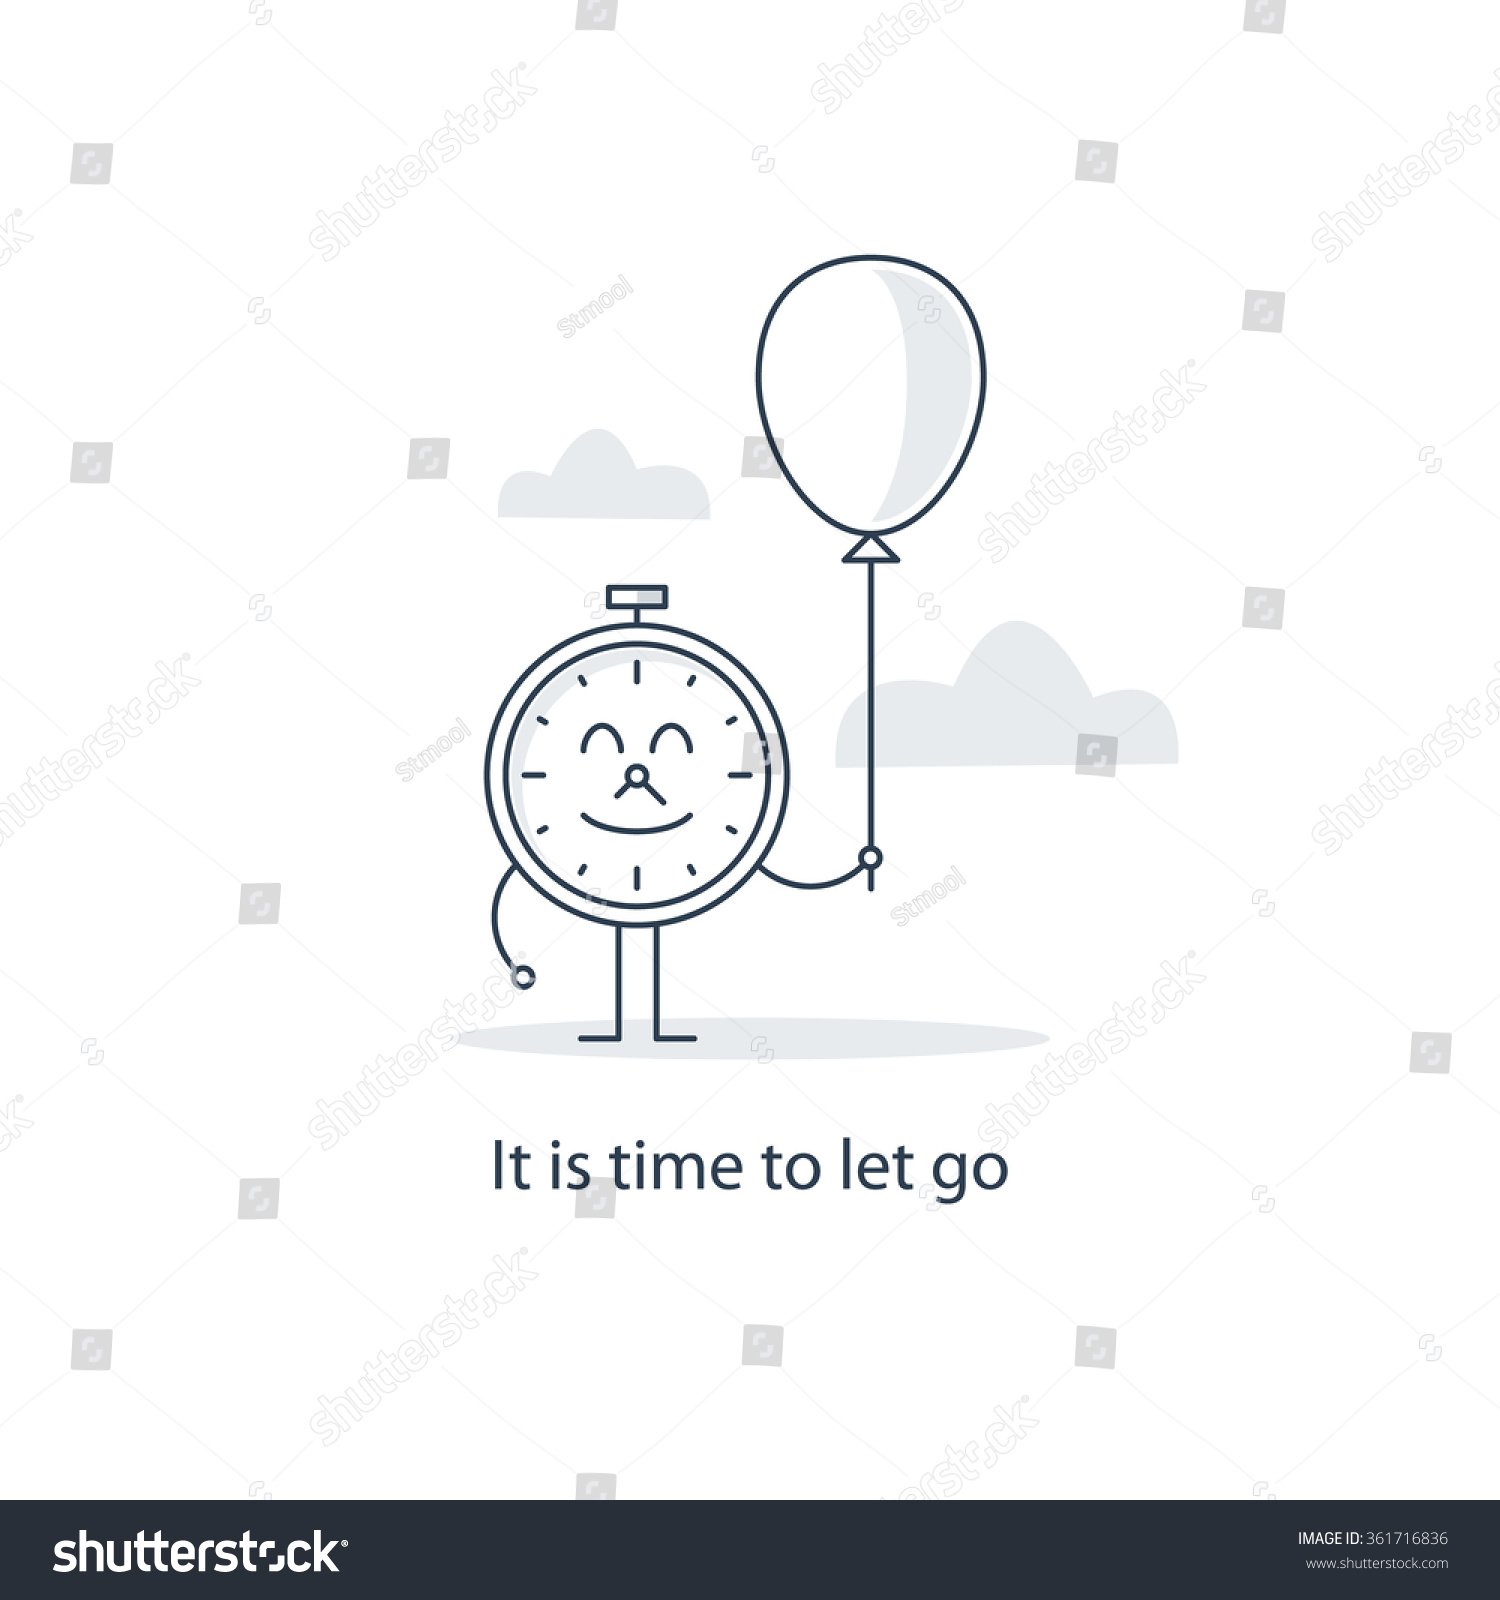 Image result for its time to let go